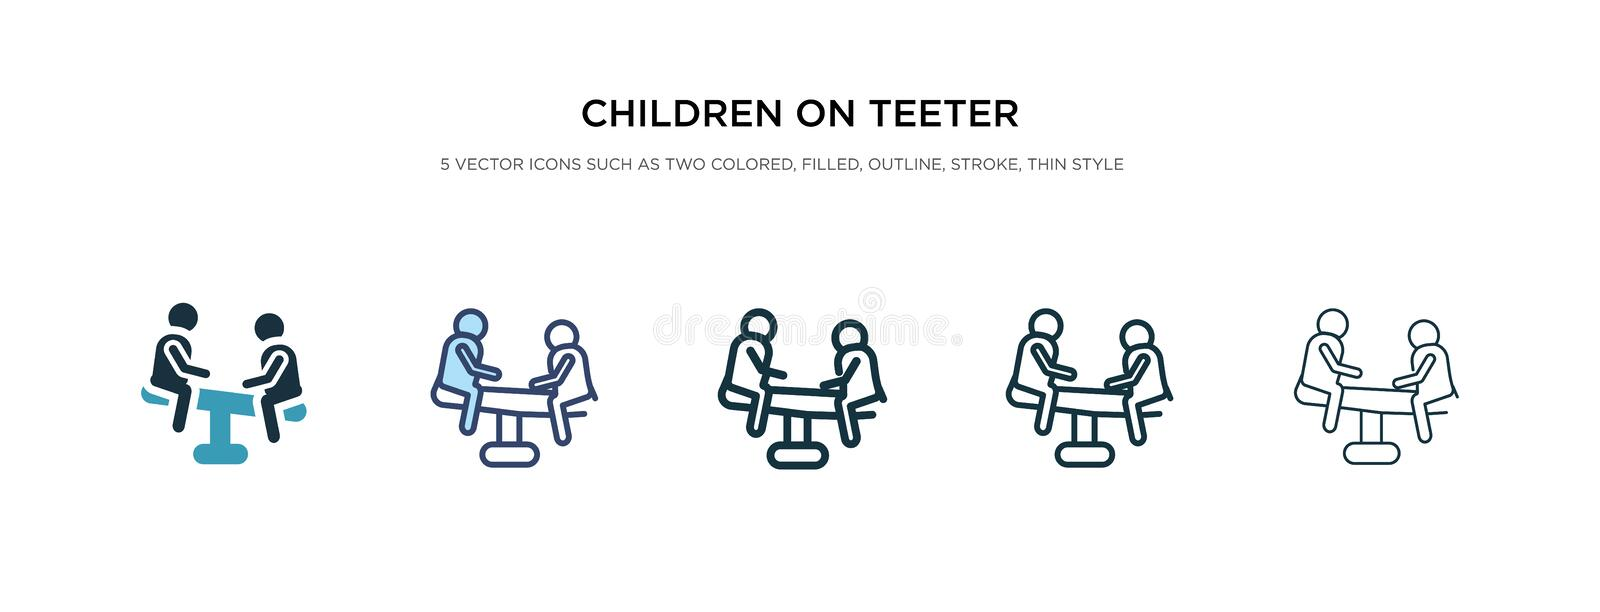 Children on teeter totter icon in different style vector illustration. two colored and black children on teeter totter vector stock illustration